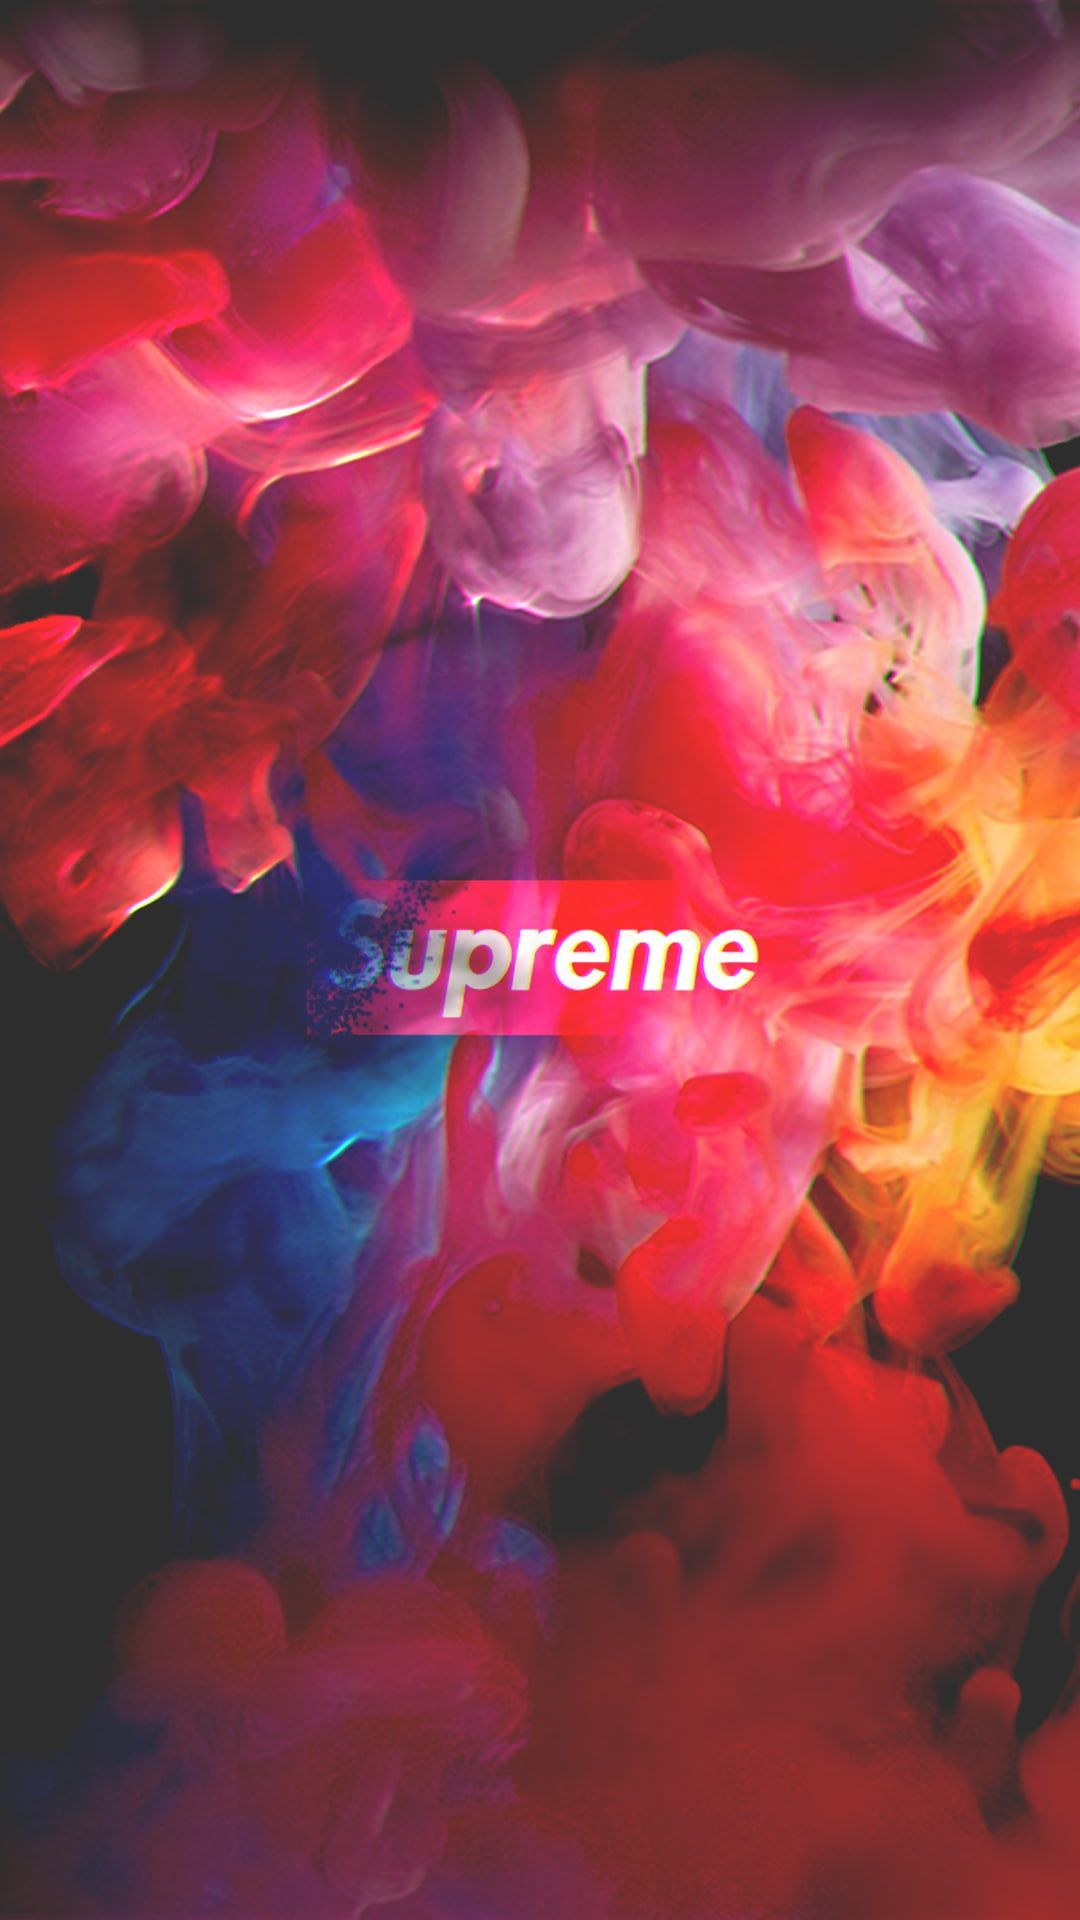 2500 Hd Wallpapers 4 Images Hd Photos 1080p Wallpapers Android Iphone 2020 In 2020 Supreme Iphone Wallpaper Supreme Wallpaper Artistic Wallpaper